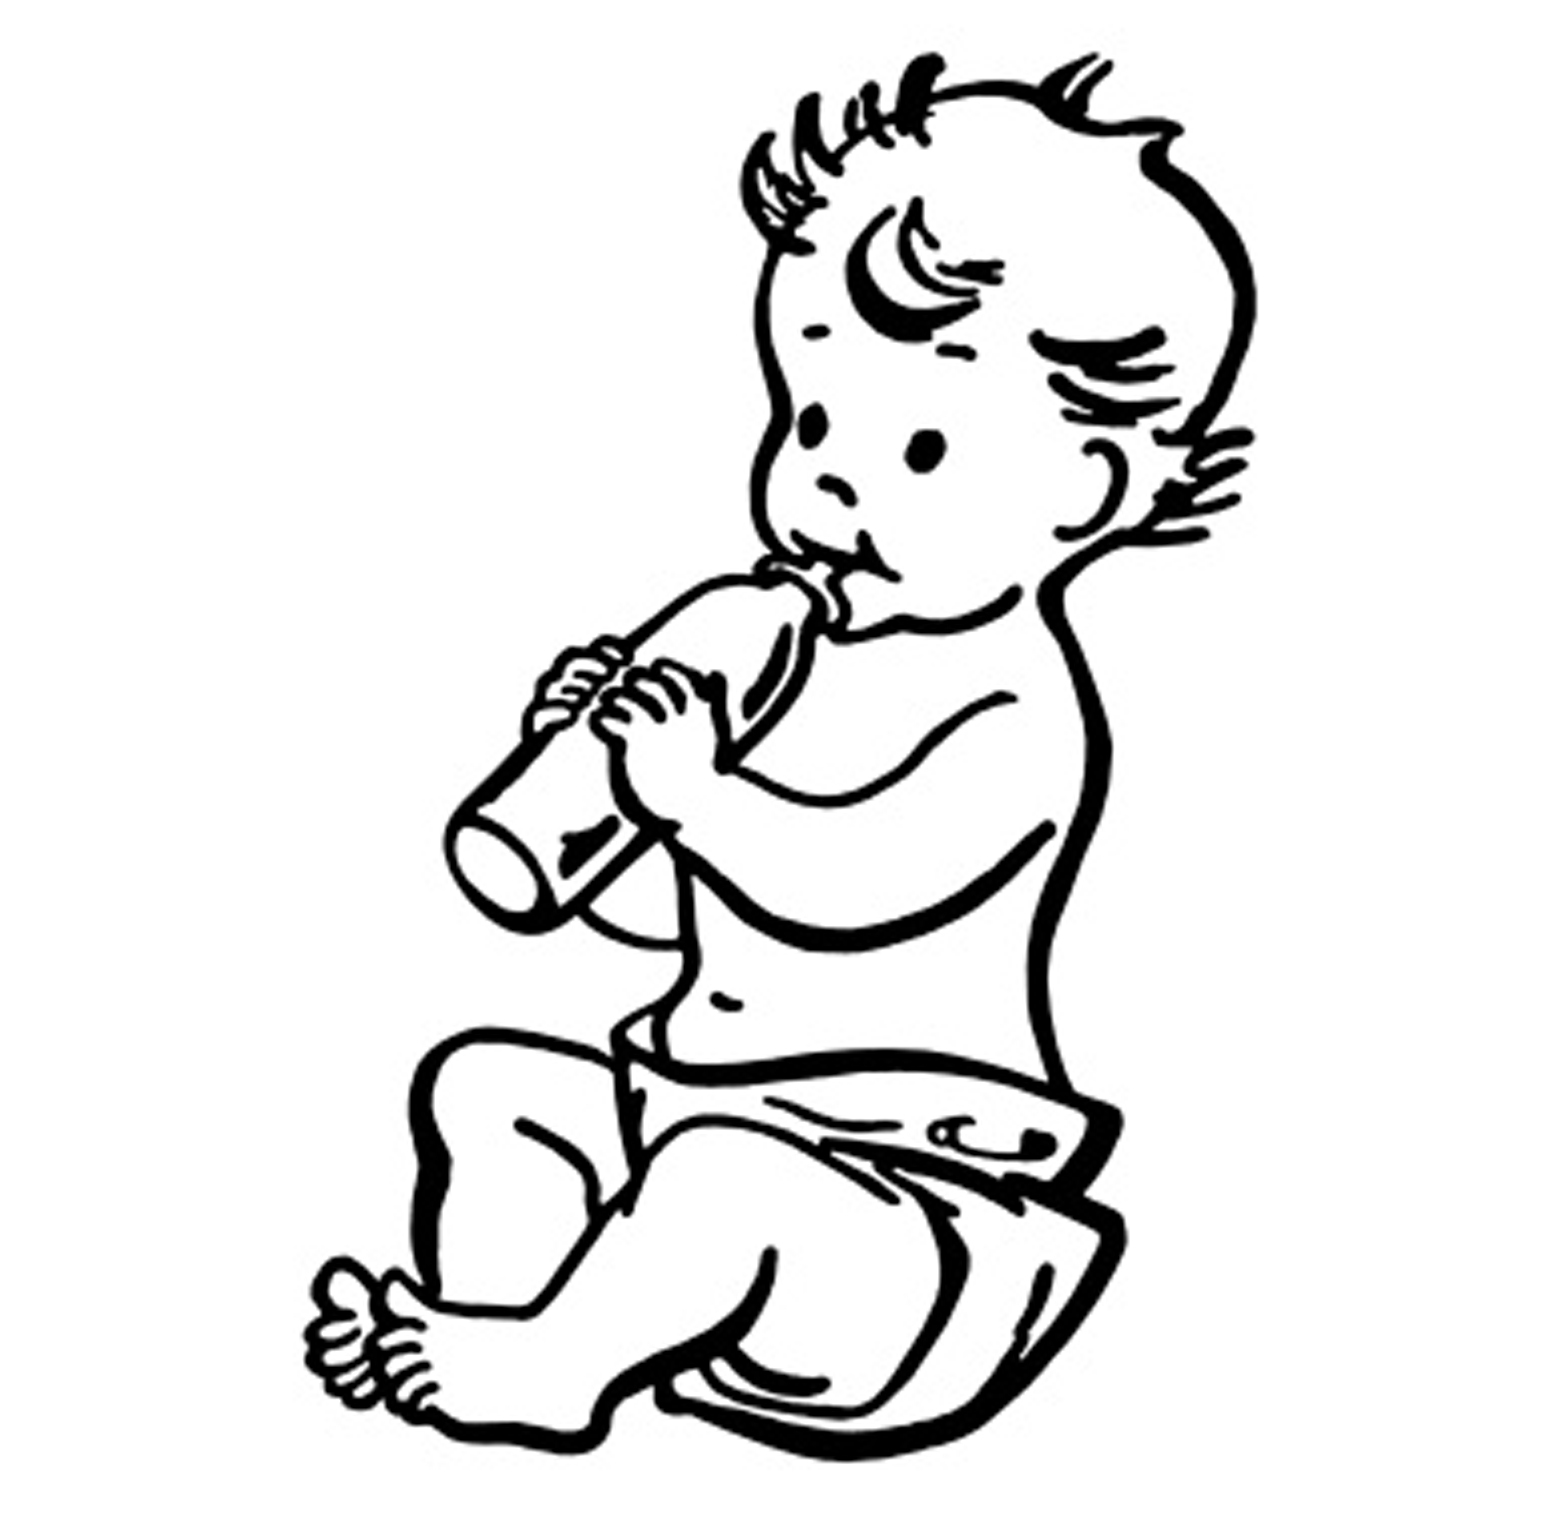 Baby Black And White Clipart 1 Clipart Station